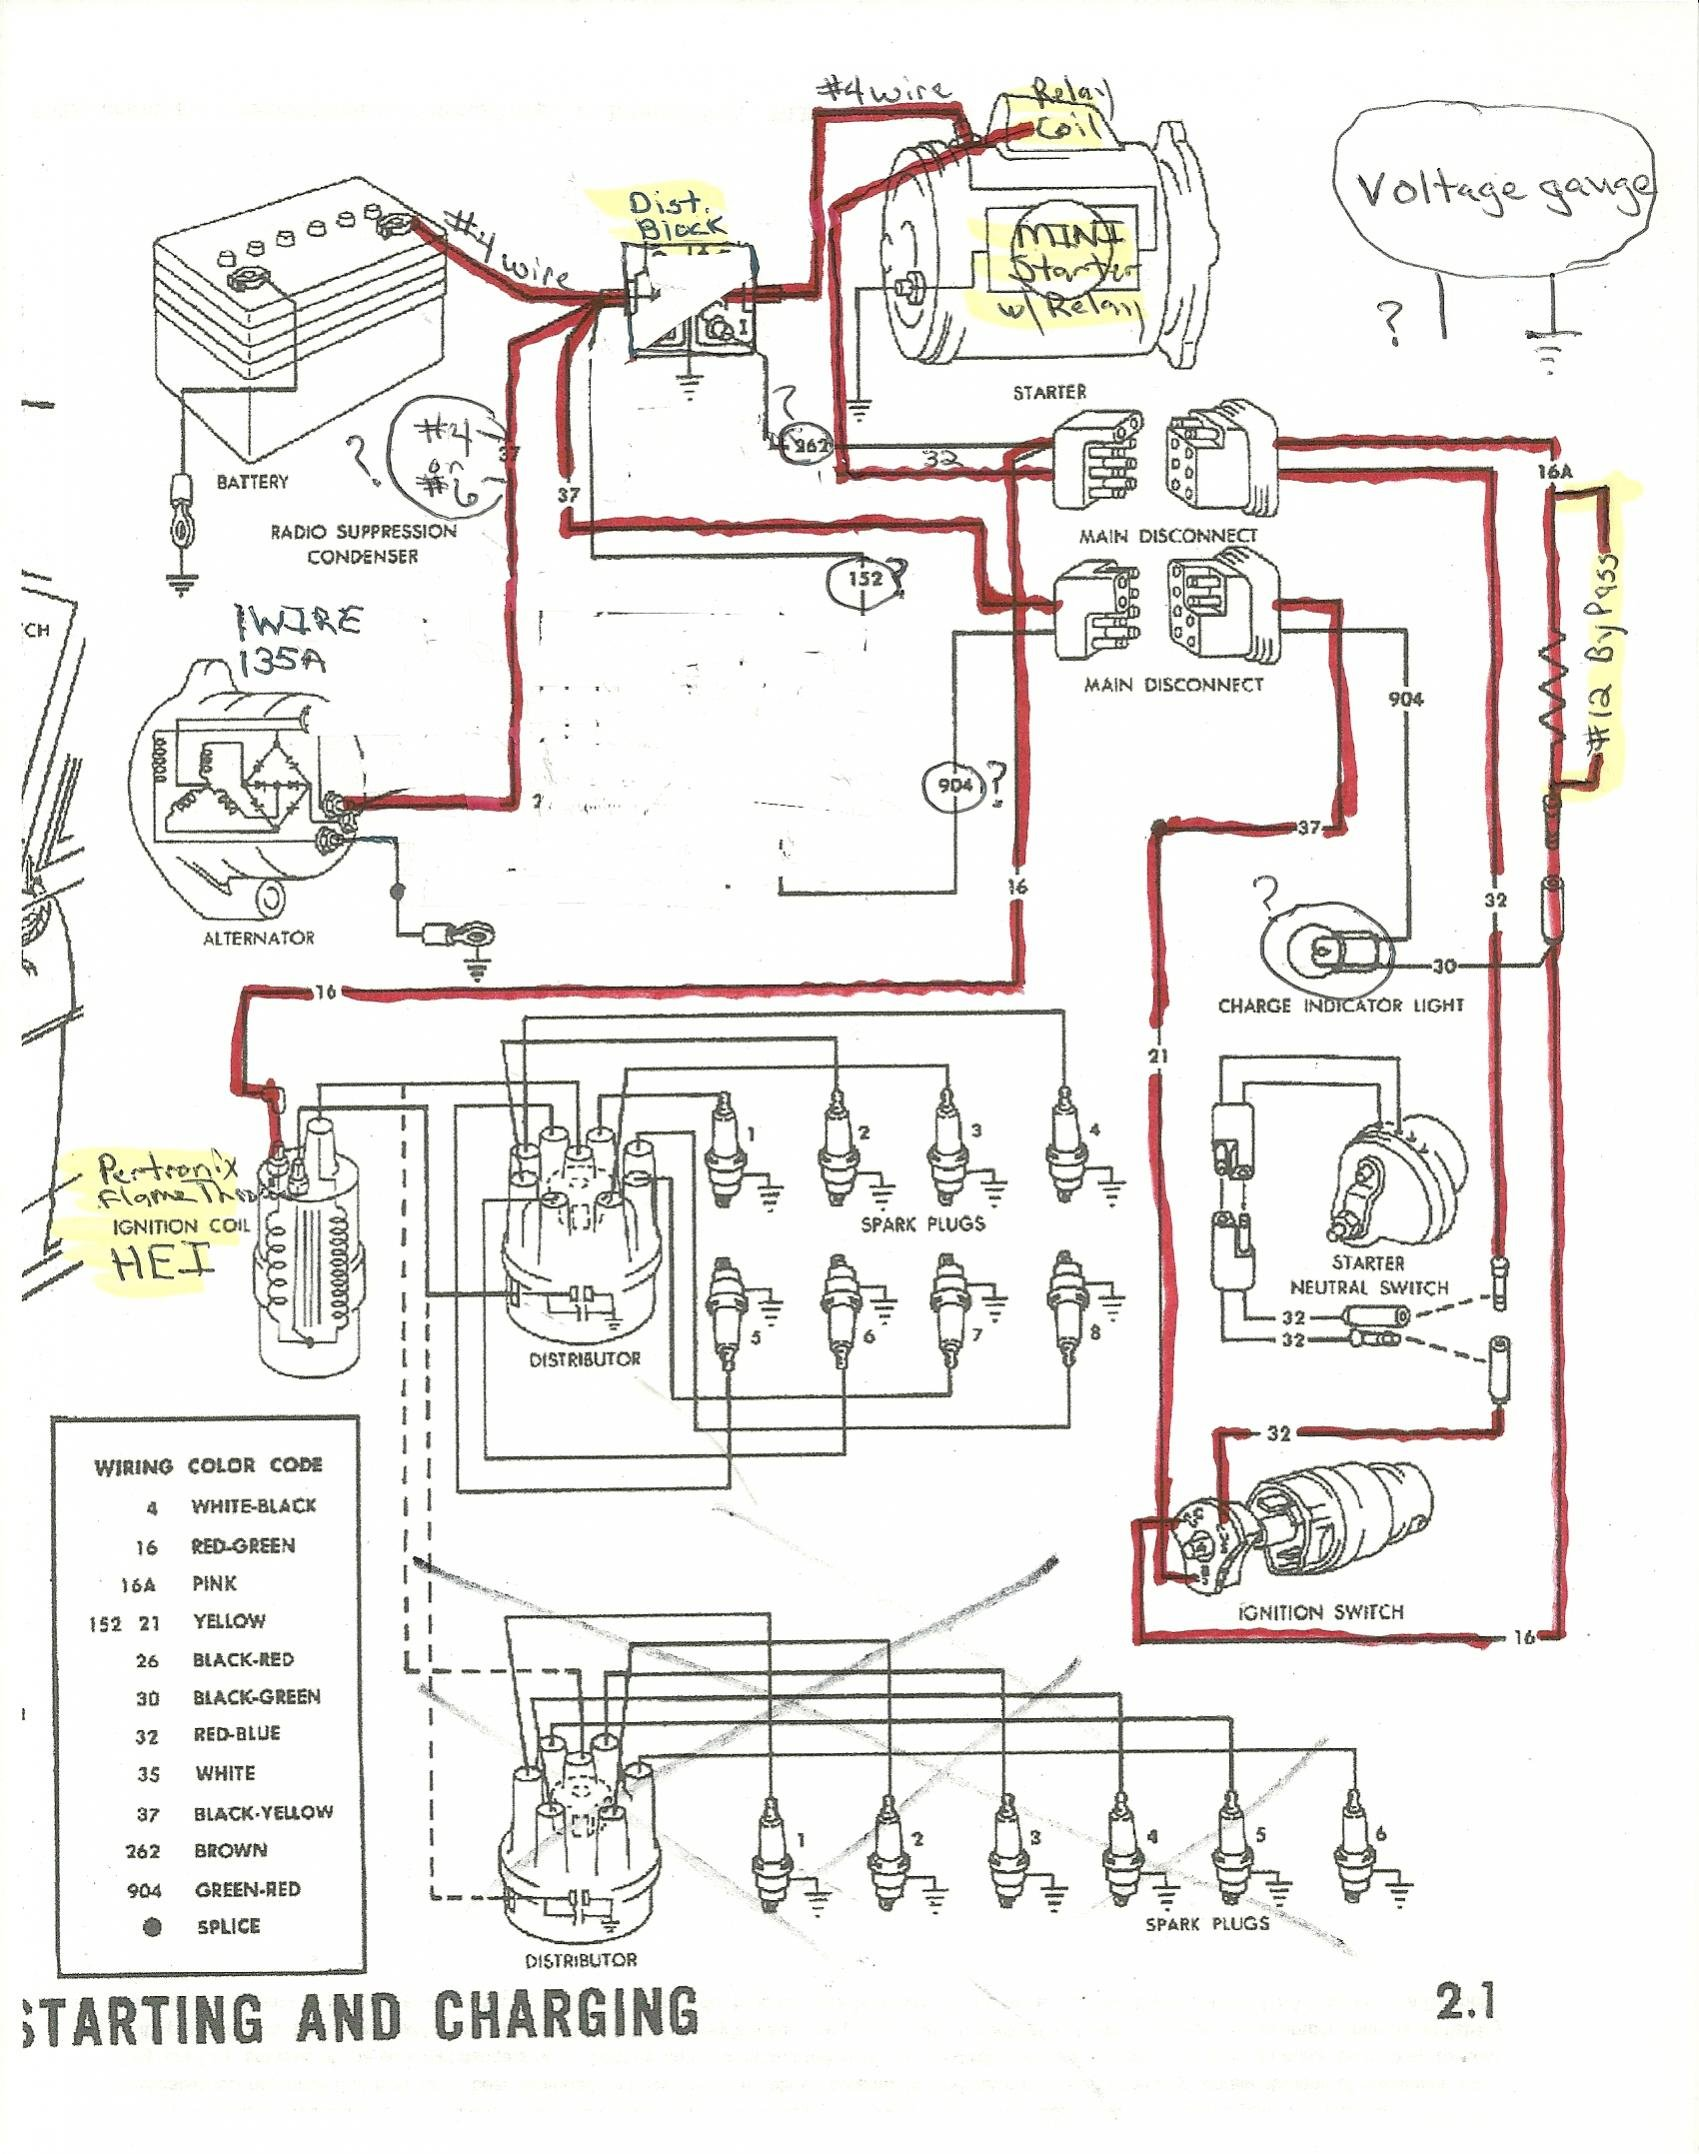 hight resolution of 1967 chevelle starter wiring chevy starter solenoid wiring 454 chevy starter solenoid diagram gm chevy starter